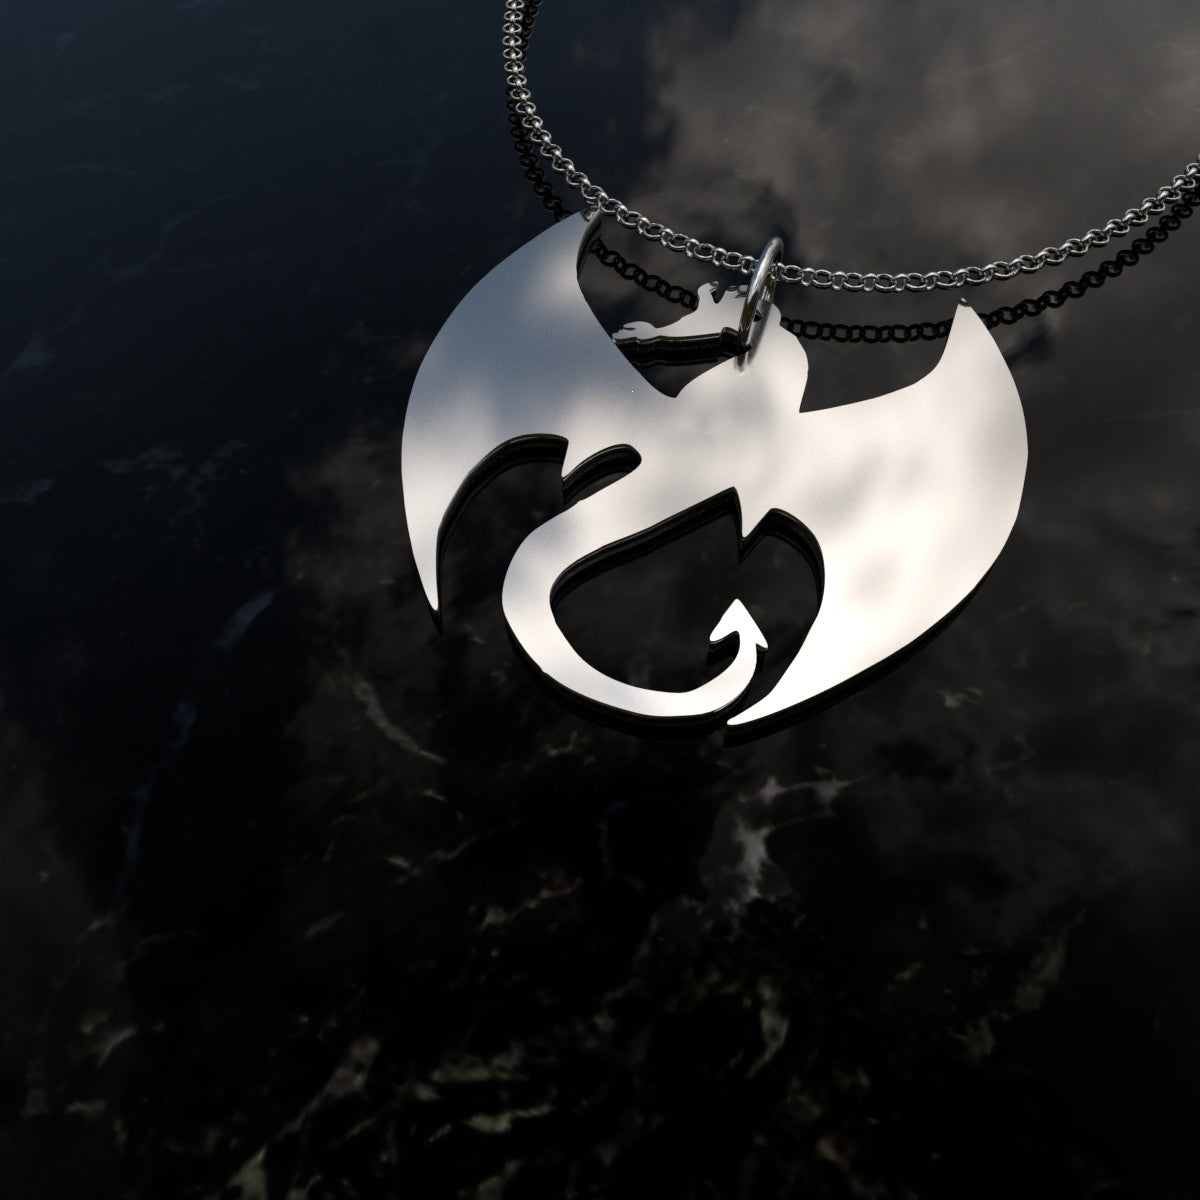 If you love Dragons and Sterling Silver then you've come to just the place! This beautiful elegant Sterling Silver Fire Dragon Pendant is made especially for you. A great reminder fo the Fire within!